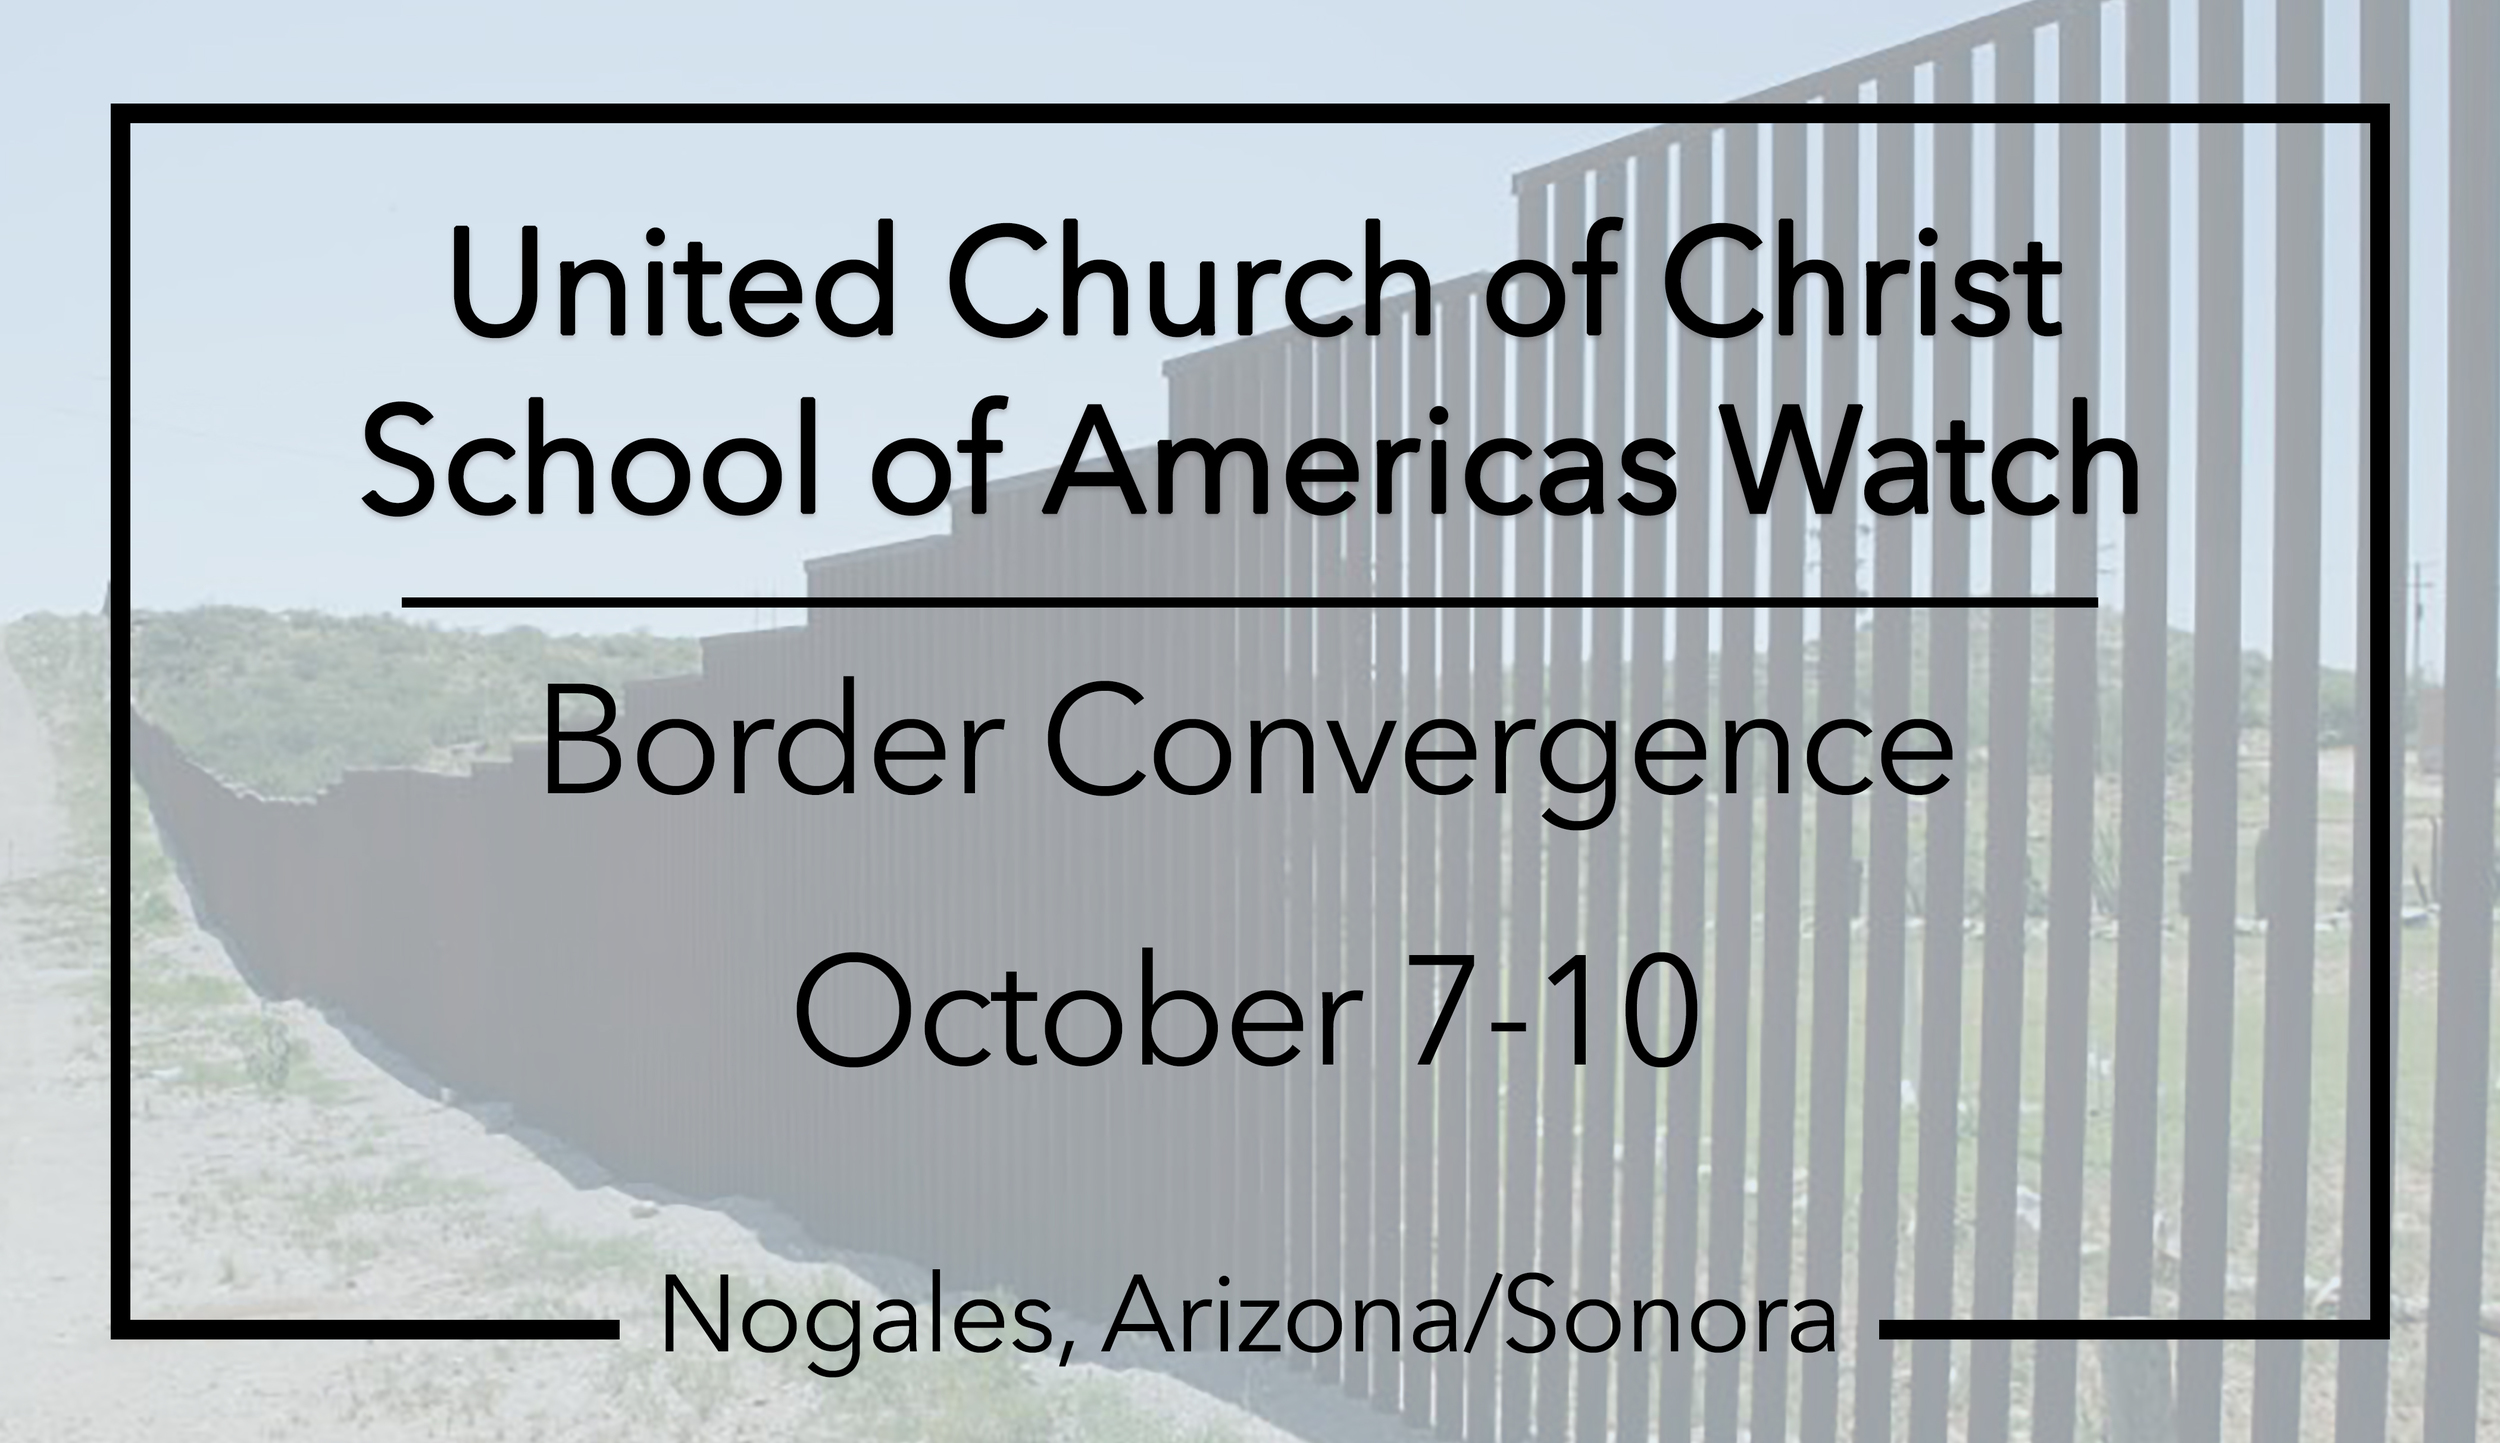 God loves beyond borders.  In the United Church of Christ we are called to an extravagant welcome of all God's children, no matter who they are or where they are on life's journey. At a time when the politics of fear and hate are overwhelming airwaves, people of faith are called to respond with love. Together we are working to build bridges, not walls.   Register your congregation today! [Link]   Learn More  [Link]   Download Flyer [PDF]   Endorse the Border Convergence  [Link]  Please come and join the October 10-11 Border Convergence in Nogales, Arizona/Sonora, at the U.S./Mexico border. Together UCC congregations will join the School of Americas watch immigrants rights groups and interfaith partners to demand justice to address root causes of immigration, justice at the border, and justice for immigrants.  As politicians build walls, we must build bridges. The UCC is building grassroots power to welcome immigrants and refugees and challenge a status quo that is responsible for the root causes of migration.   Joining the Movement with School of Americas Watch  Many congregations have participated in the annual protests at Fort Benning to close the School of Americas that was responsible for training death squads in Central America. For the first time, that protest is moving from Georgia to the militarized US/Mexico border. The change of the location is part of broadening the issue and expanding the fight against U.S. militarization at home and abroad.  The United Church of Christ Southwest Conference, UCC National Collaborative on Immigration and the UCC General Minister and President invite you to join! The UCC is involved in the planning process and Rev. Dr. John Dorhauer will be present to participate in the interfaith service at the border. The Good Shepherd UCC (just 40 miles north of the border) has been involved in border justice issues for years and has ample experience hosting UCC congregations from across the country for border immersion experiences. If 